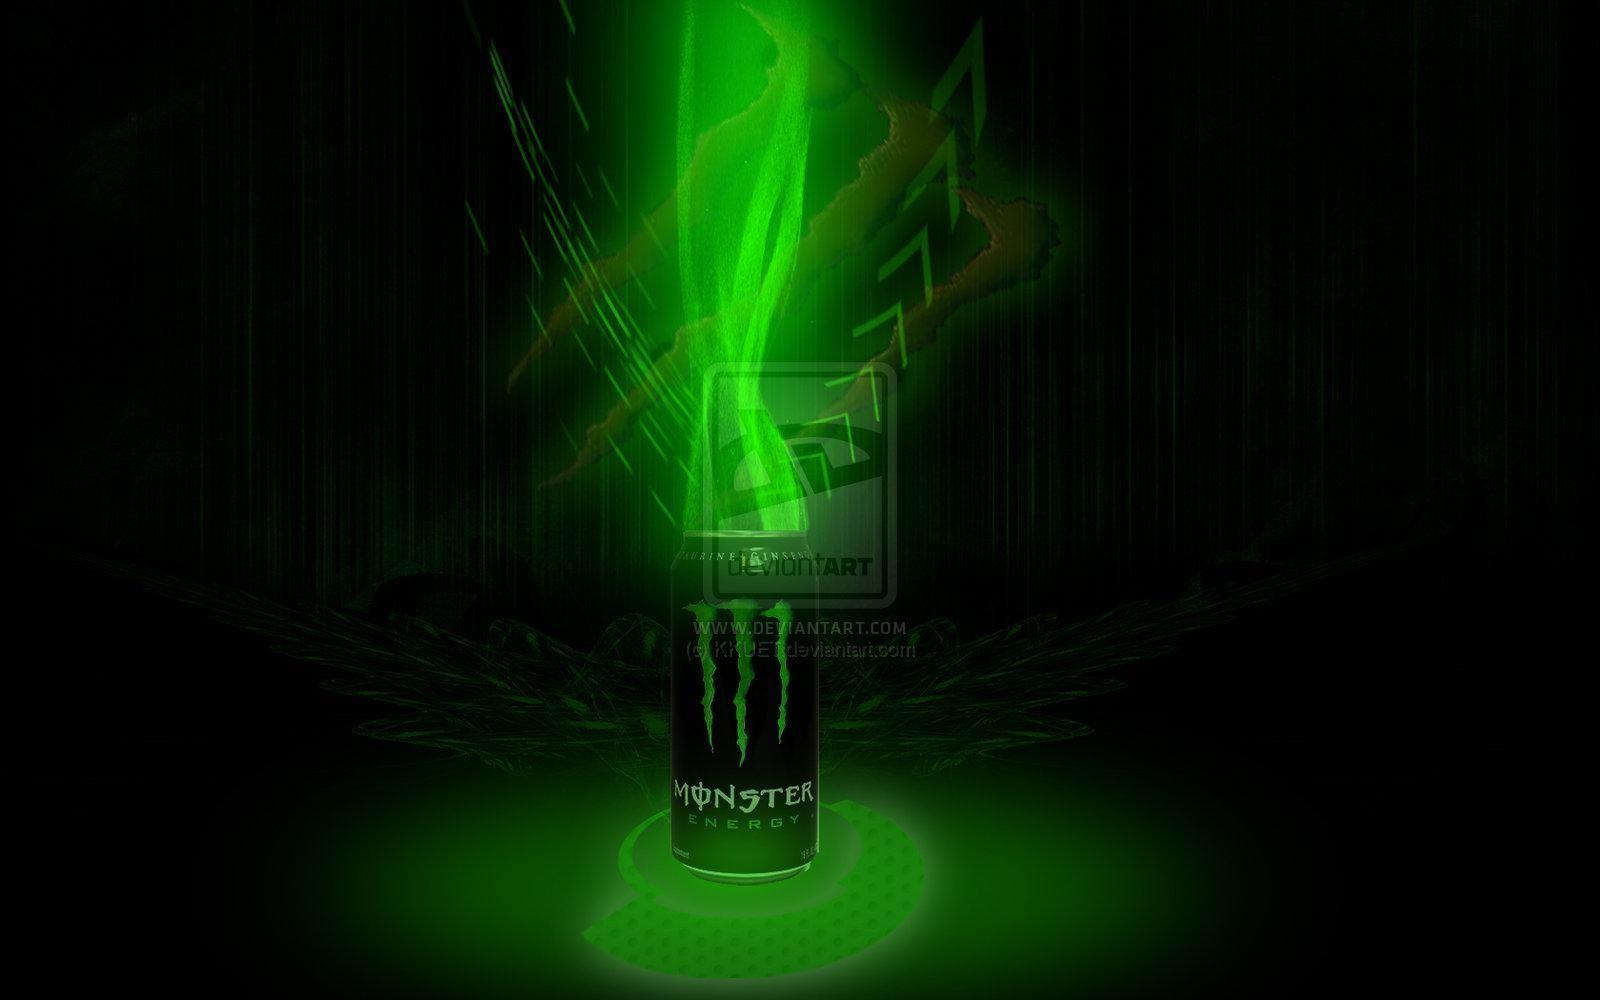 Monster Energy Image Backgrounds 23829 High Resolution Hd